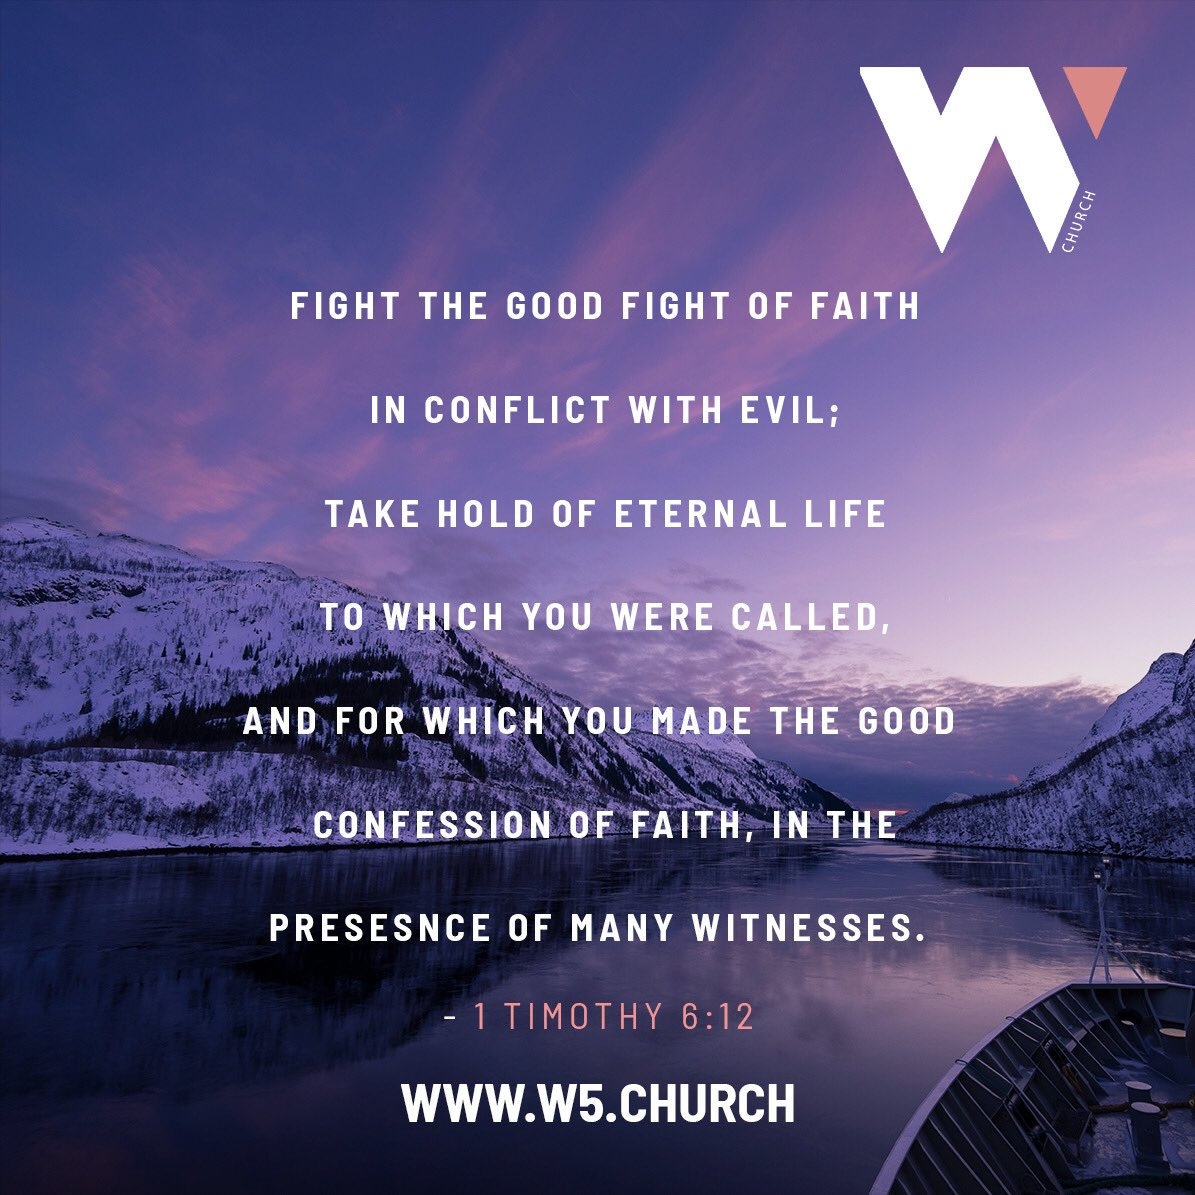 W5 church on Twitter: